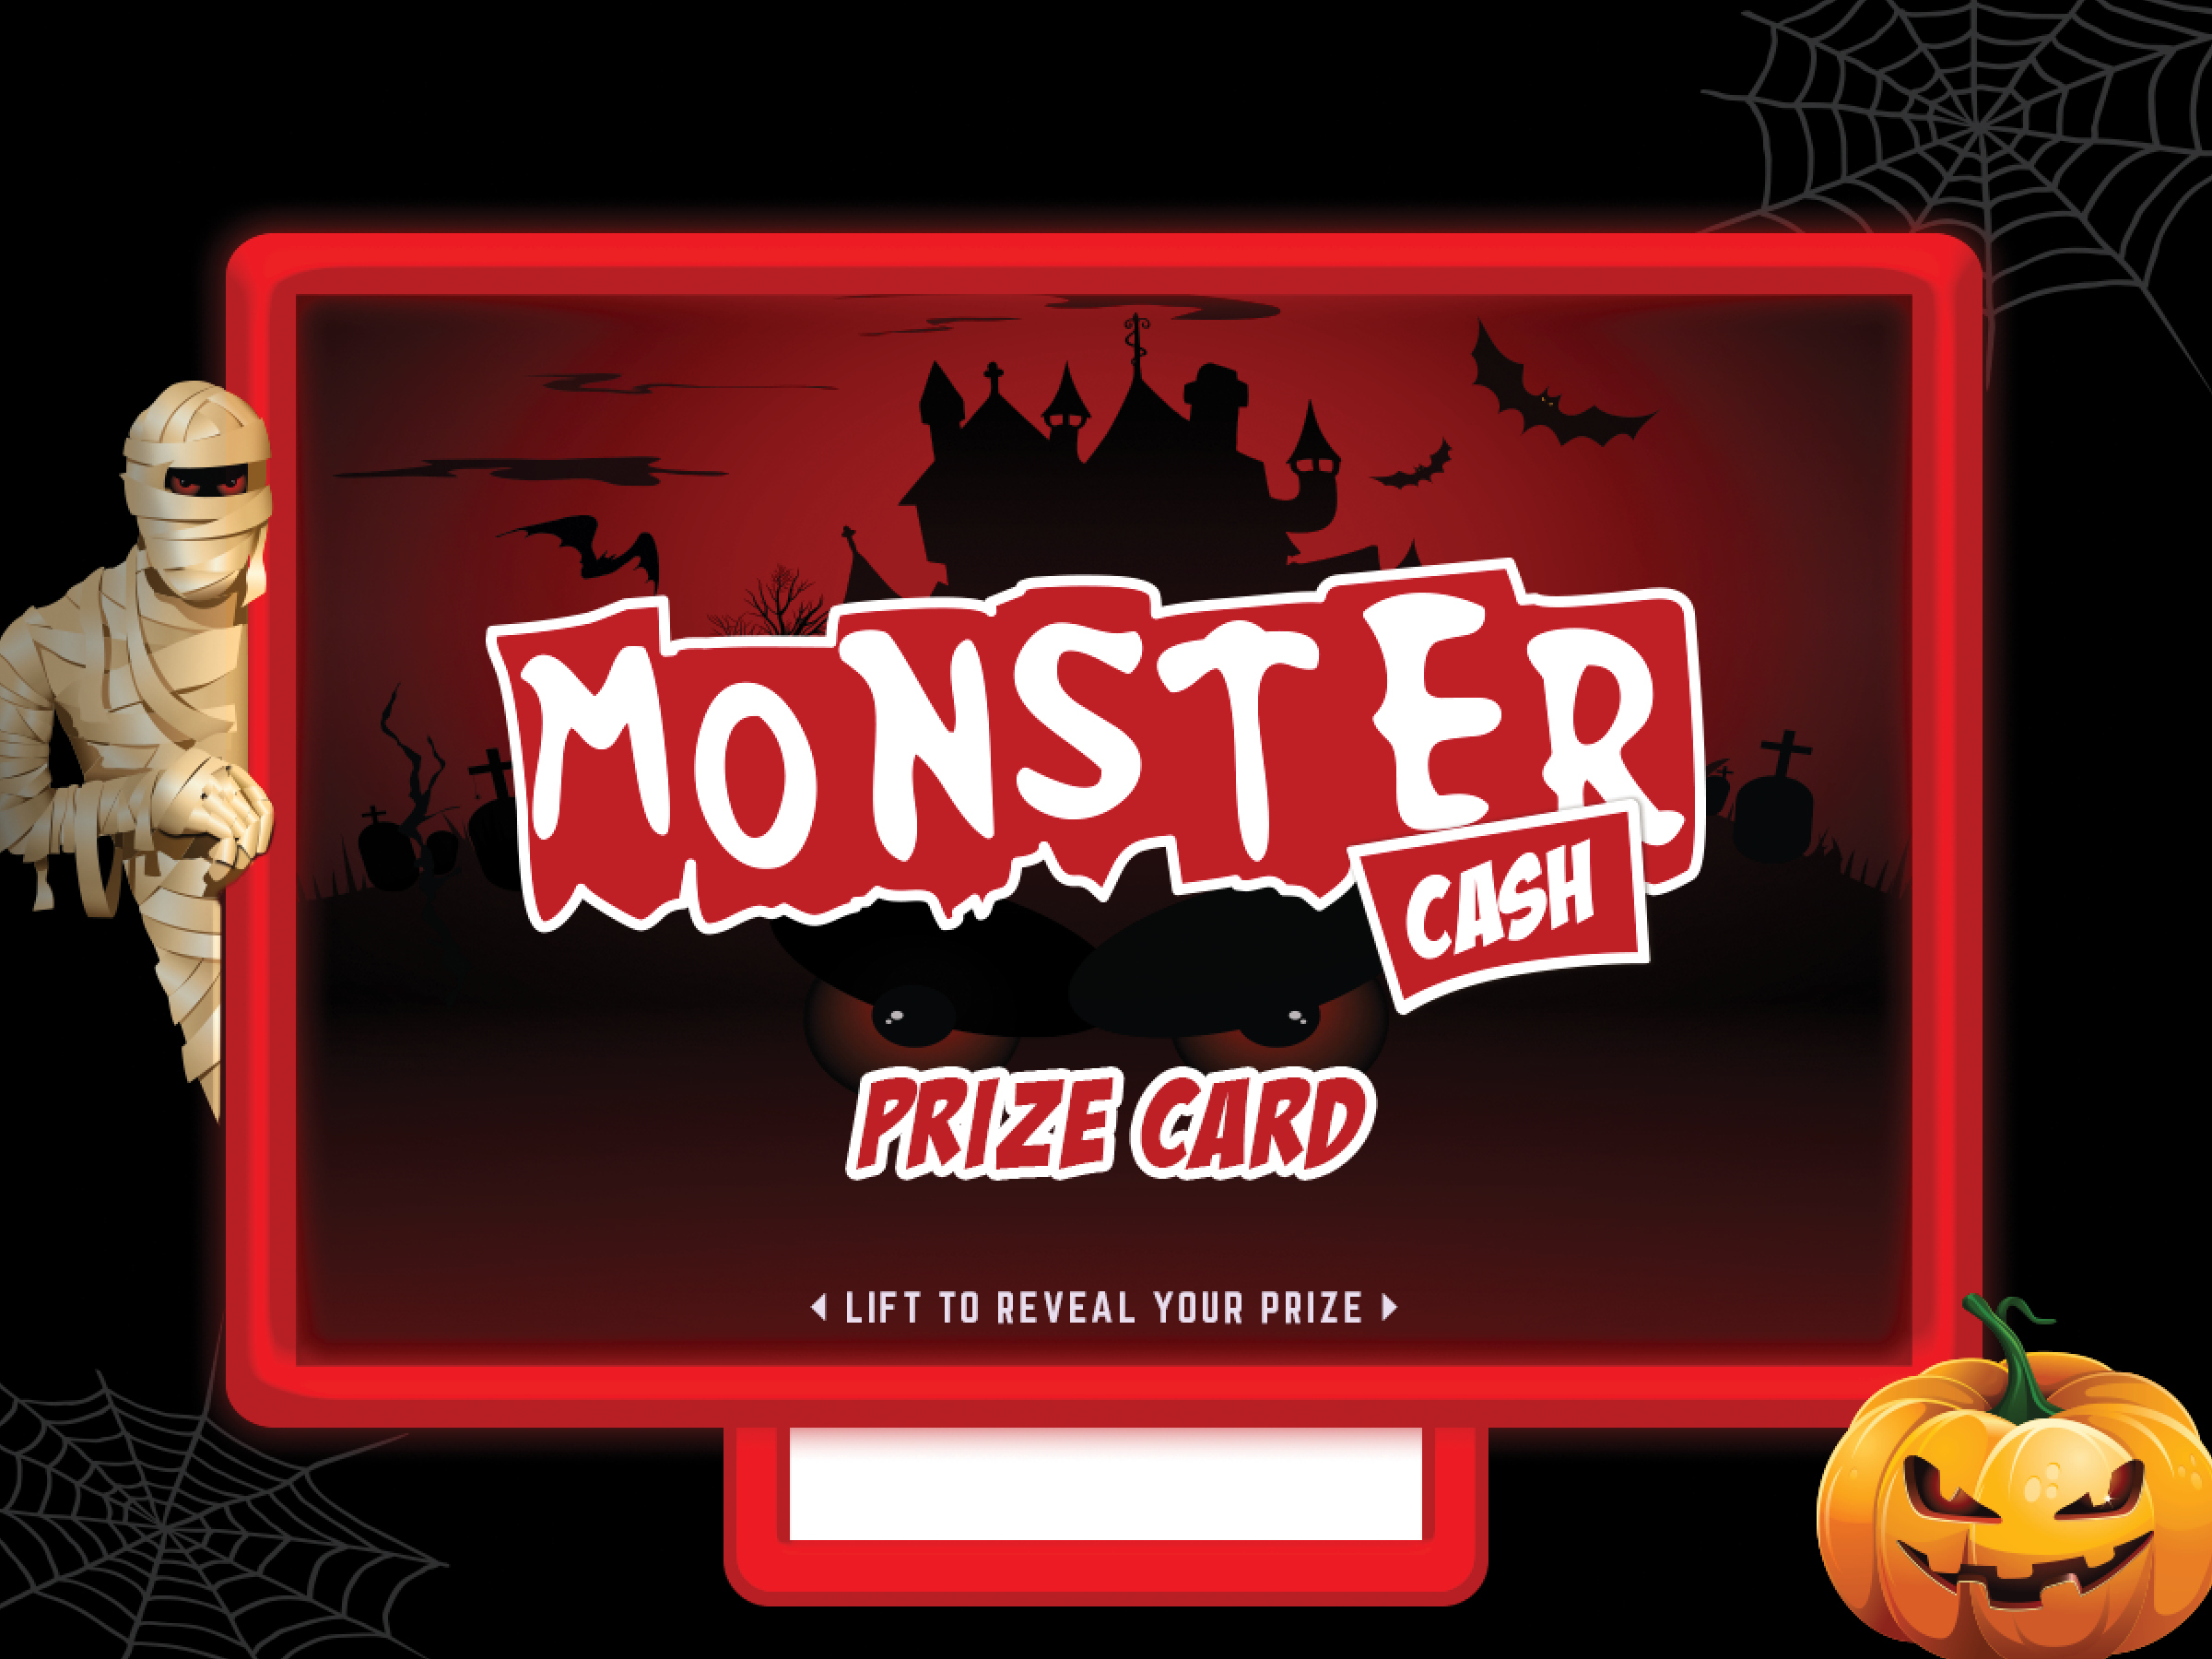 Monster Cash Pull-Tab Card